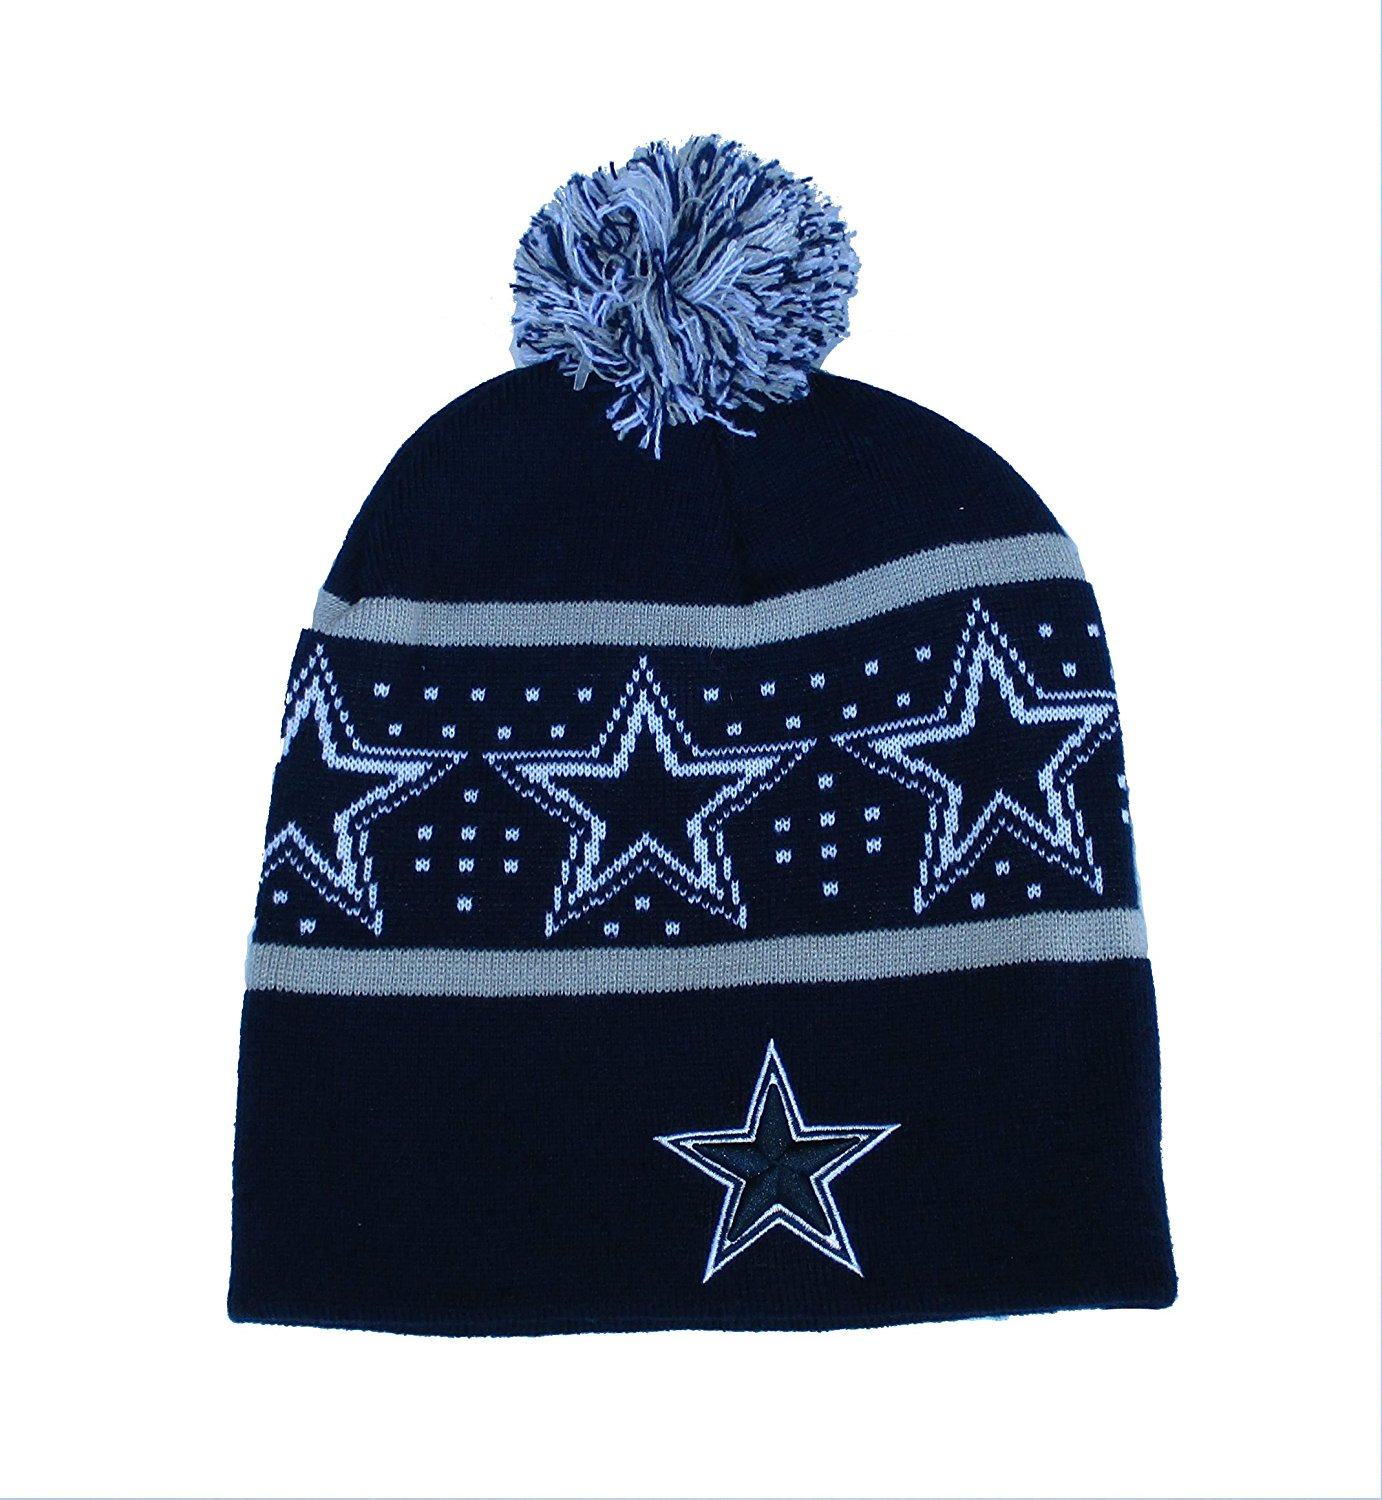 847725132 Get Quotations · Dallas Cowboys Knit 2 Tone Cuffless Beanie One Size Hat Cap  - Navy & Grey